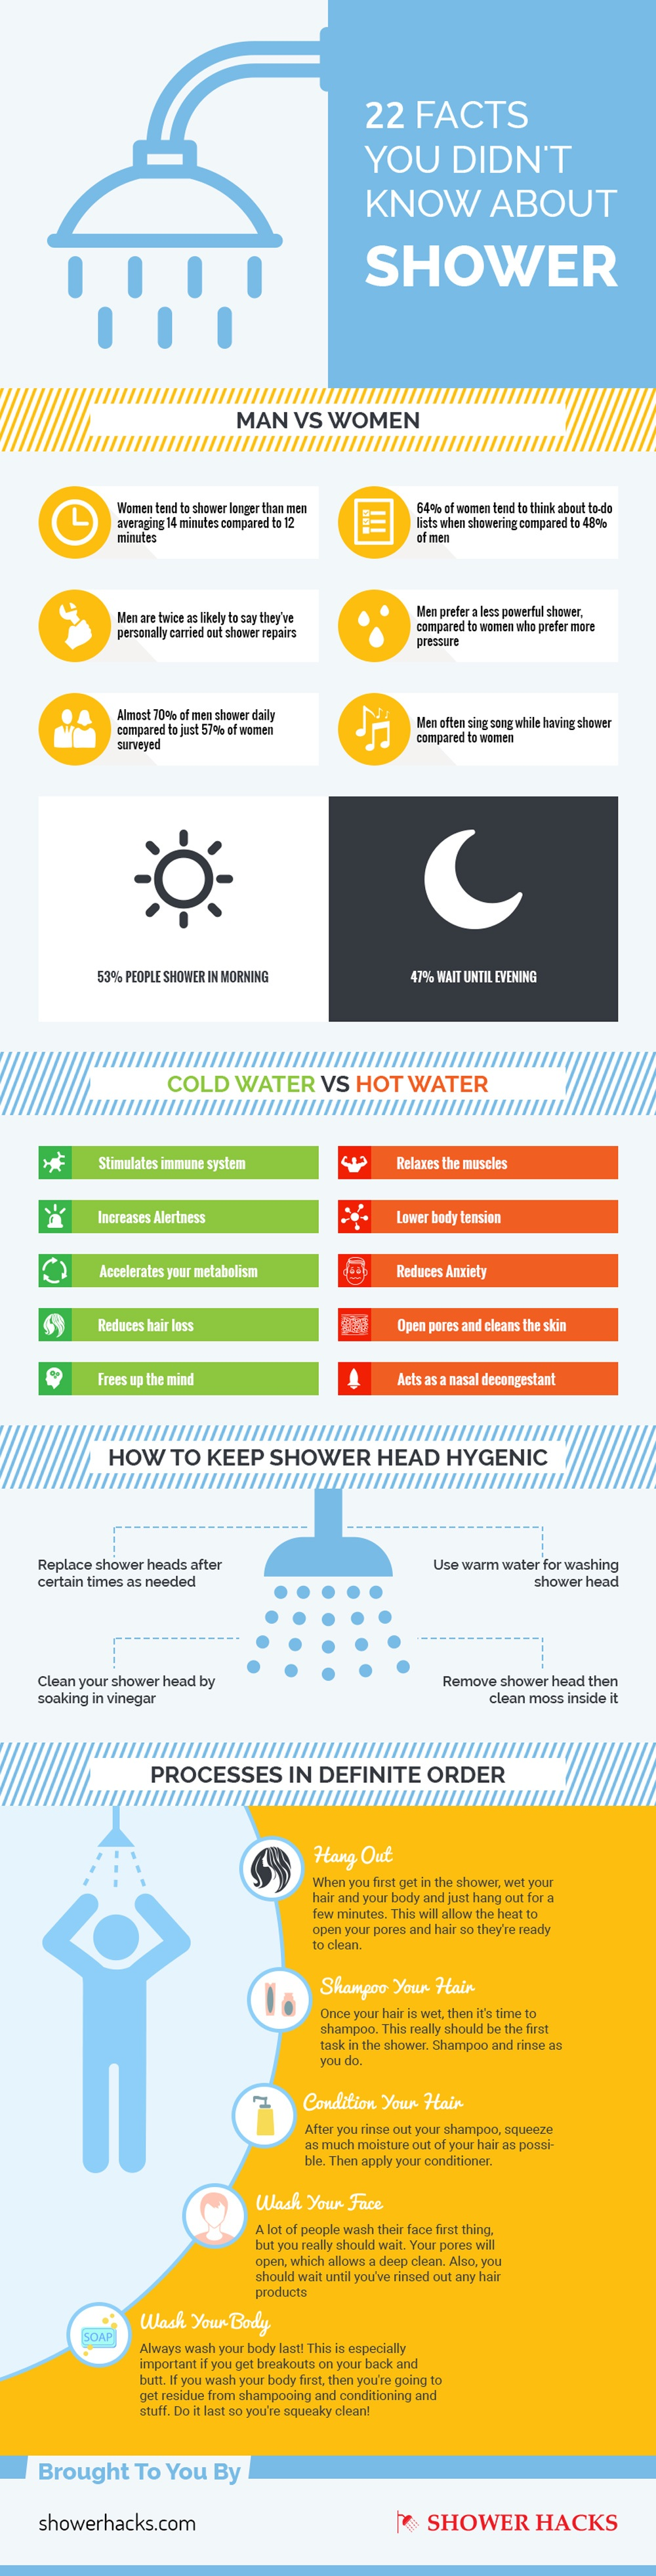 showerhacks infographic